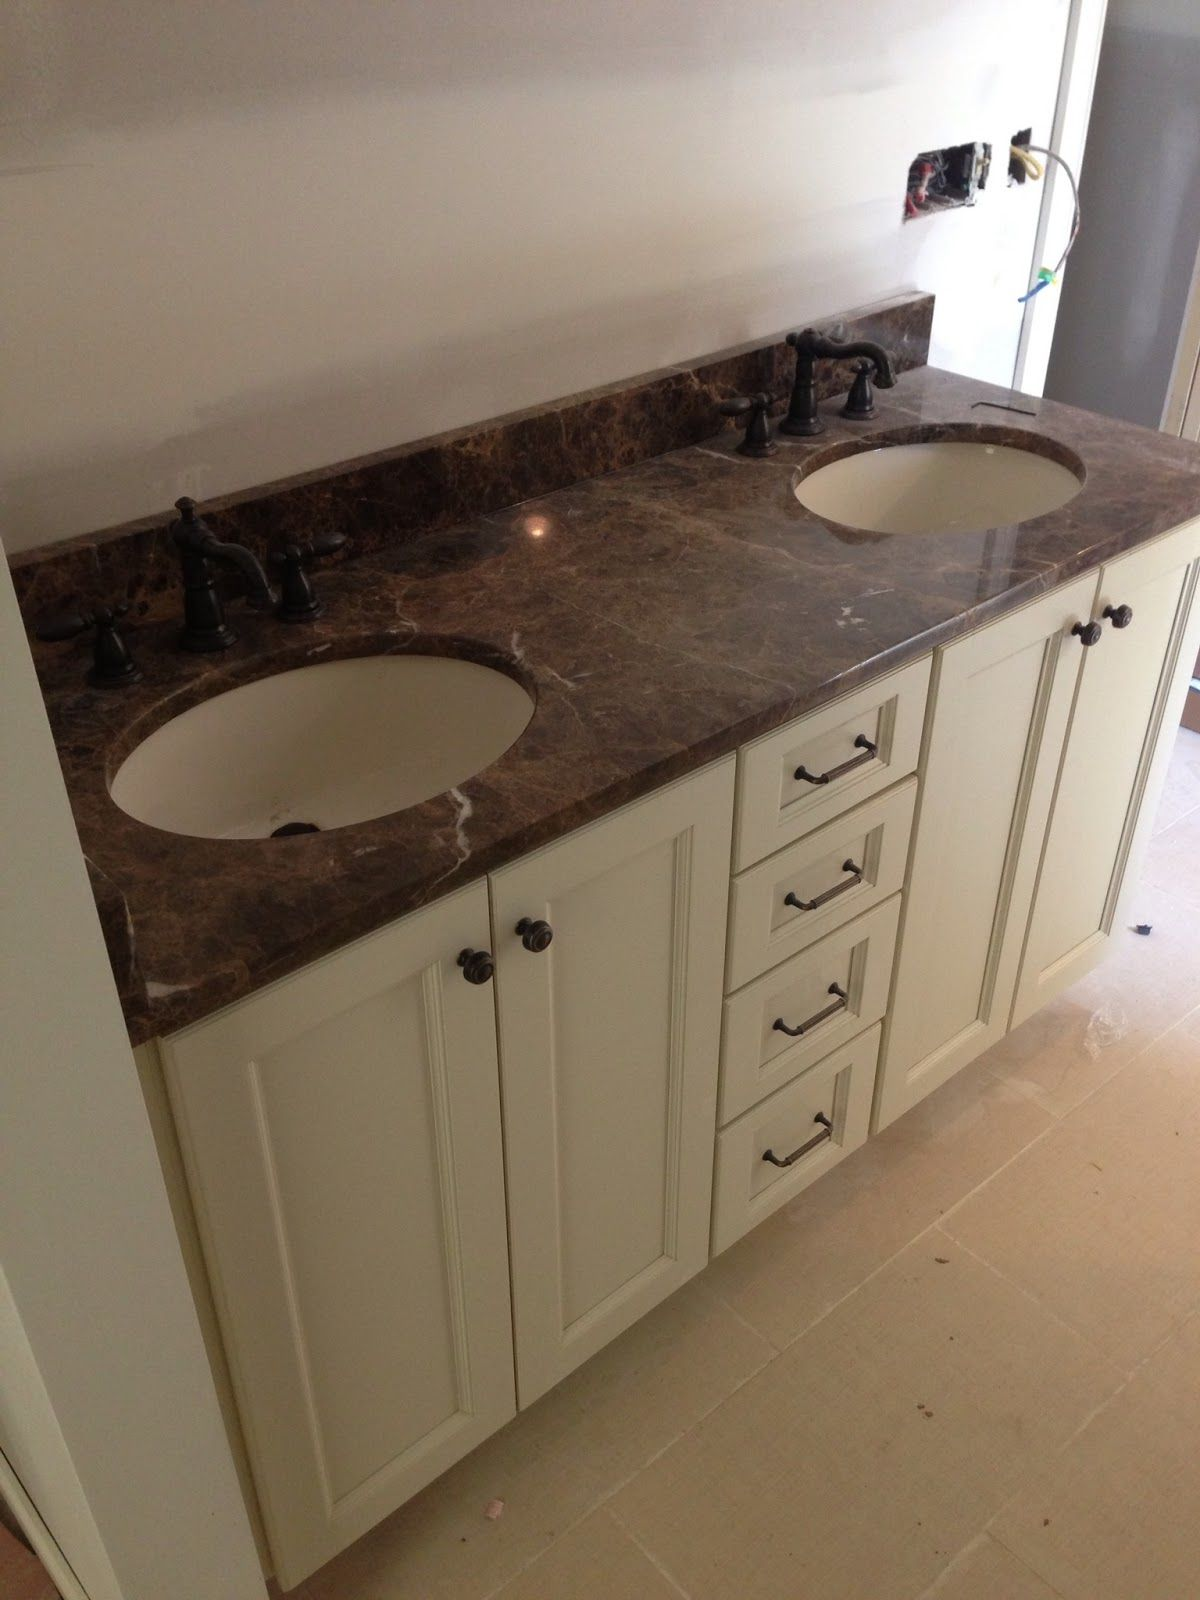 Glamourous Bathroom Vanity Tops Ideas With Under Mount Sink And Brown Granite White Cabinets S Oil Rubbed Bronze Vanities